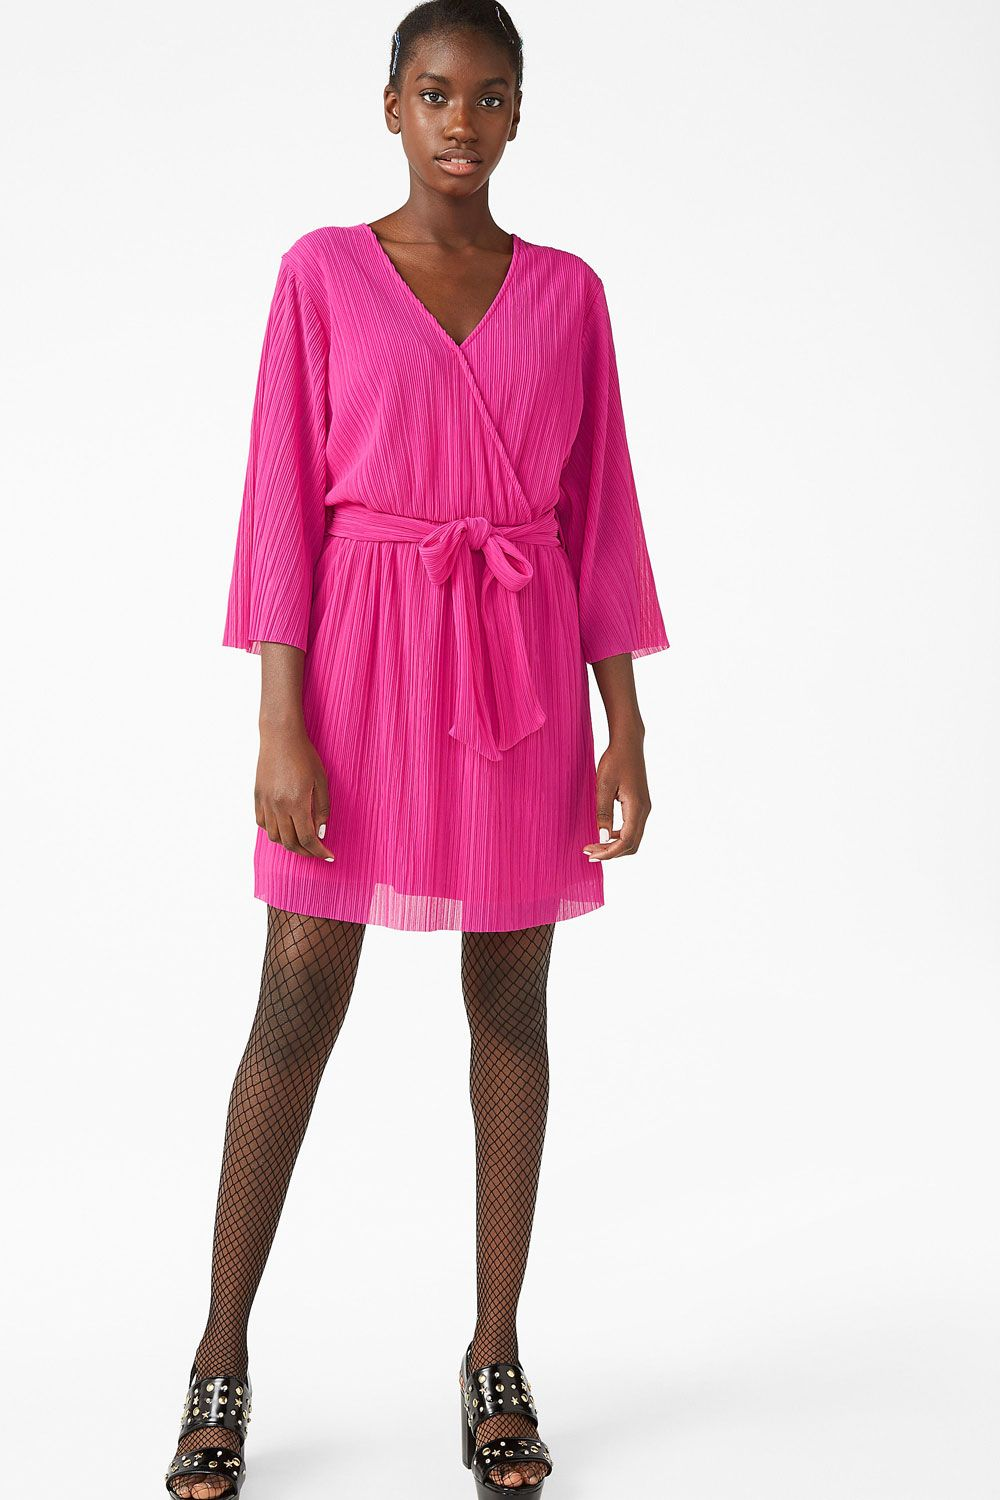 Monki - party dresses with sleeves